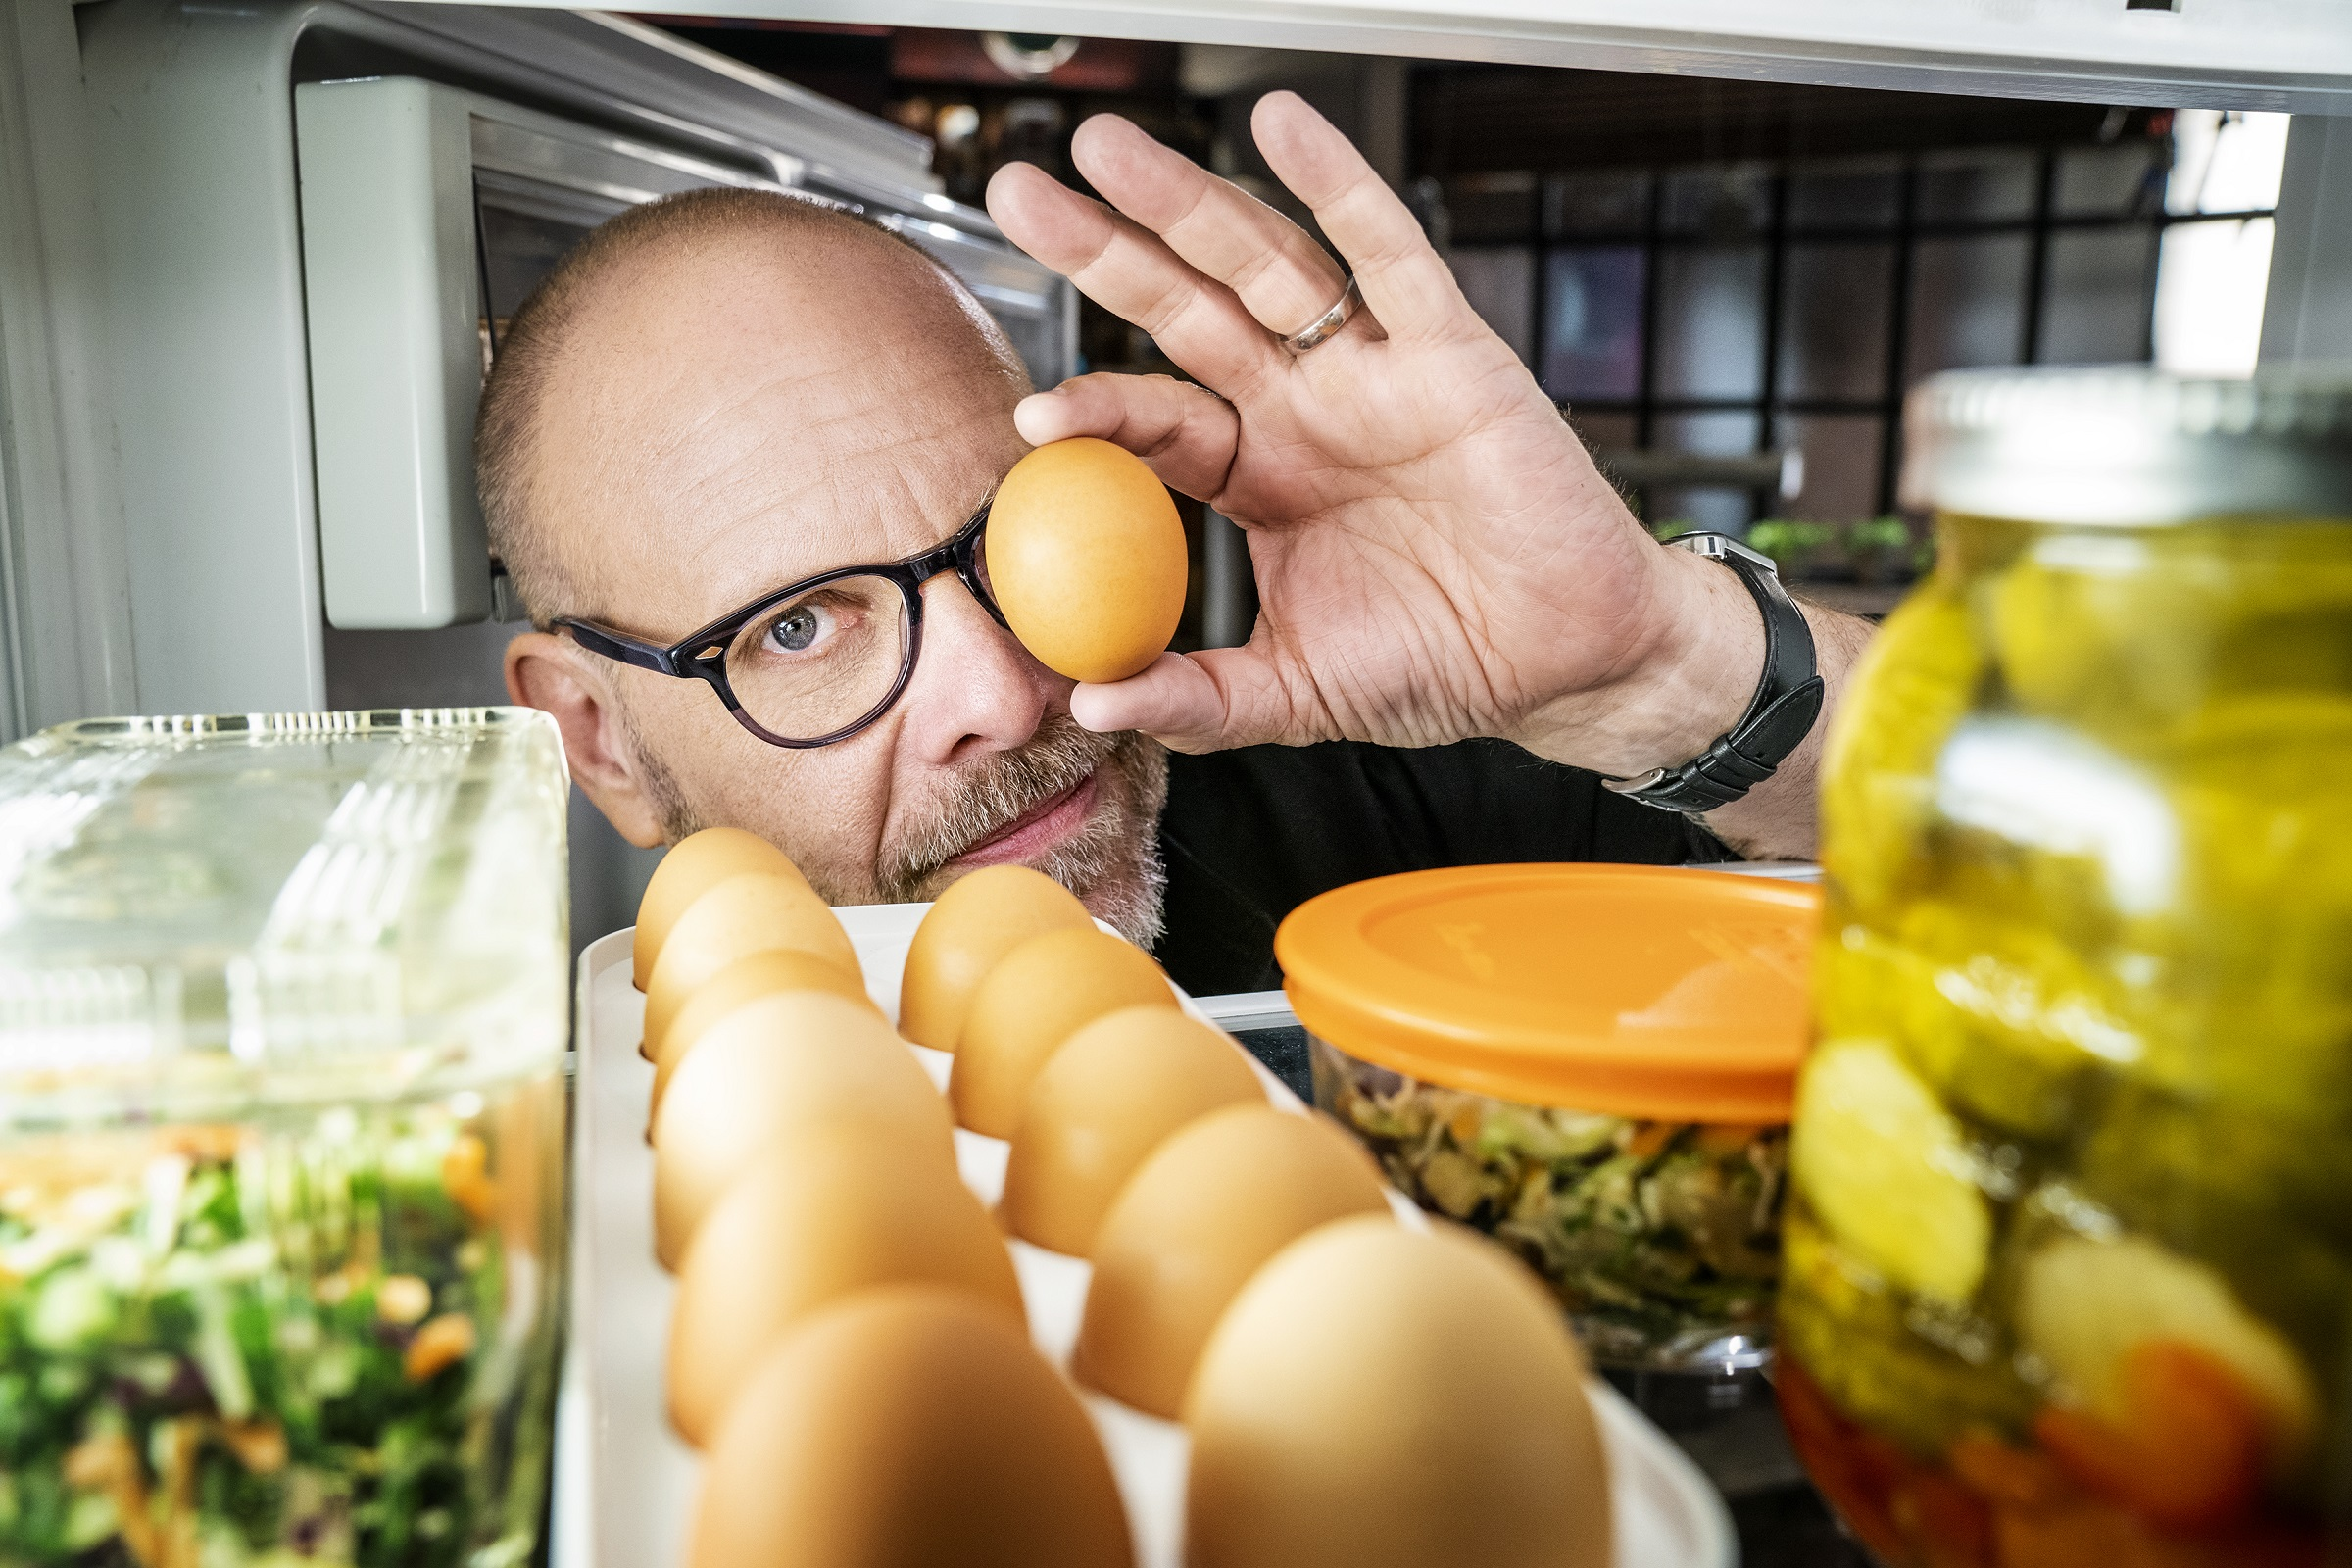 """Alton Brown, as seen from inside a well-stocked refrigerator on """"Good Eats: The Return,"""" holds an egg in front of one eye."""